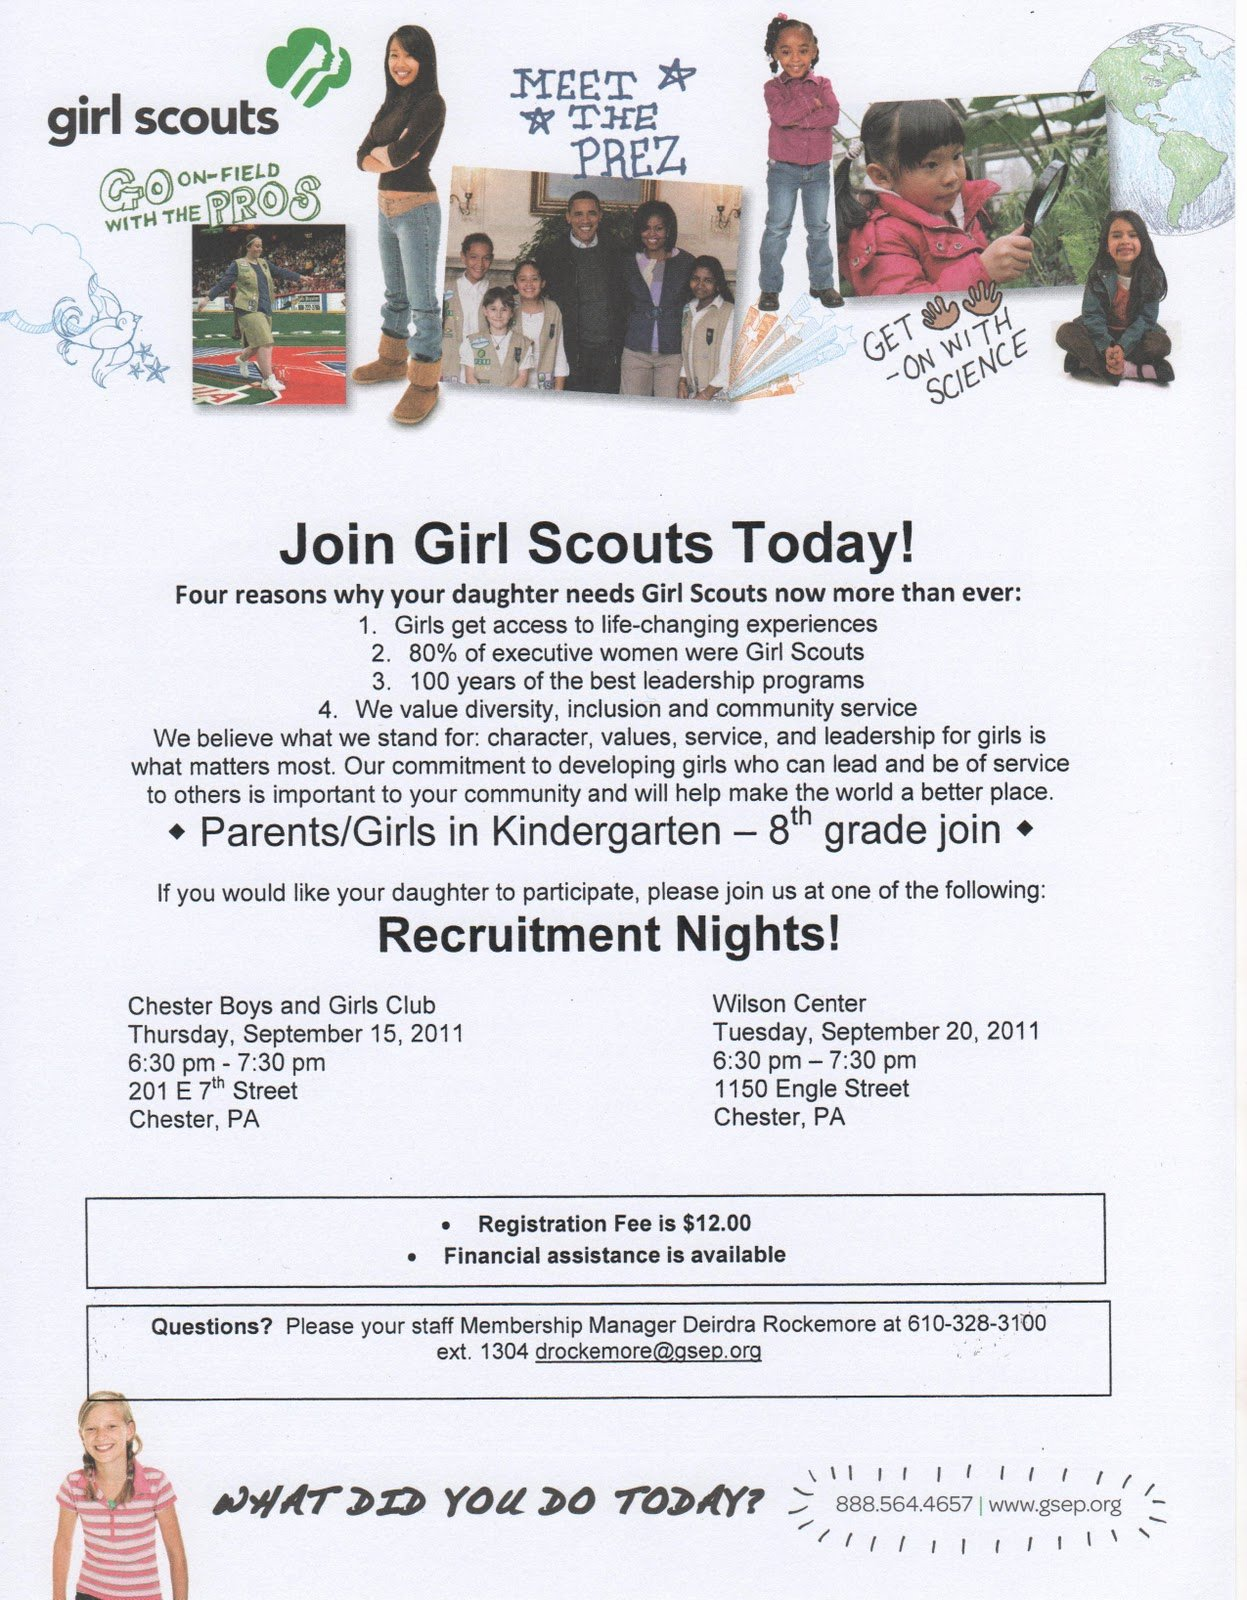 Girl Scout Flyer Template Luxury Ms B the Good News Girl Scouts Recruitment Nights